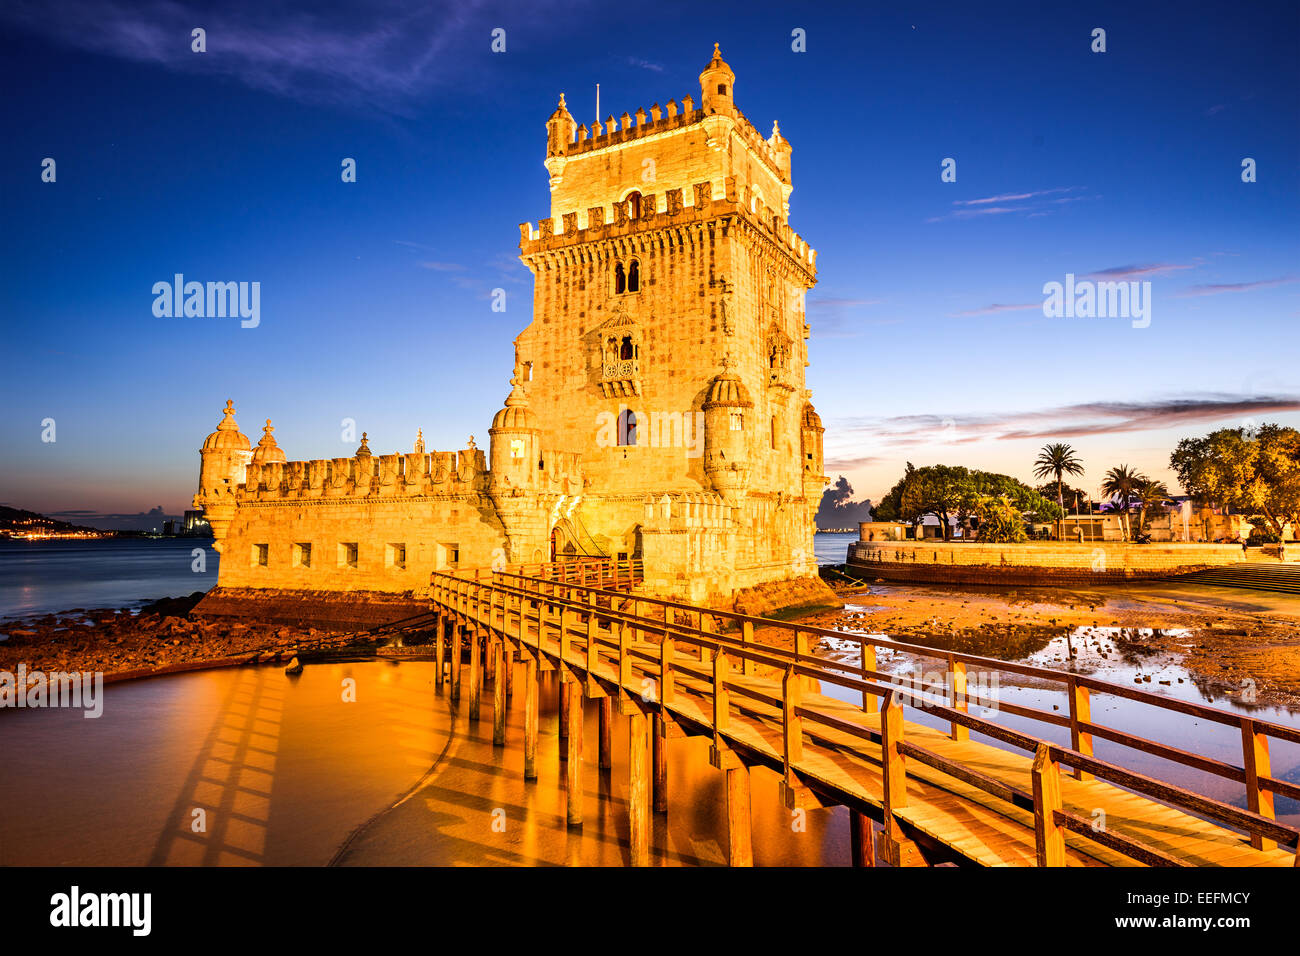 BelemTower of St. Vincent in the civil parish of Santa Maria de Belem in the municipality of Lisbon, Portugal. - Stock Image